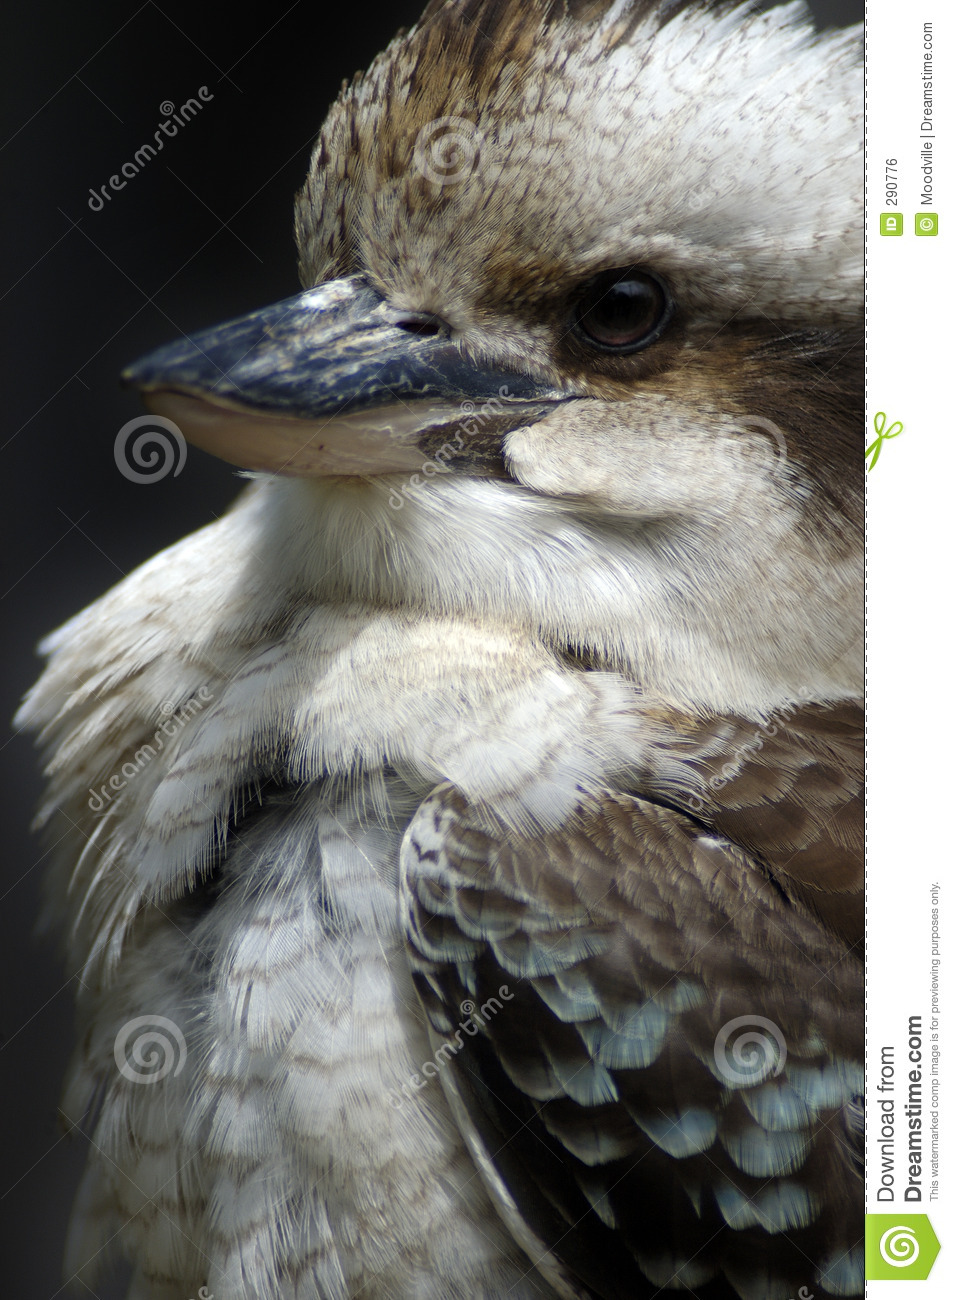 De Kookaburra van de close-up